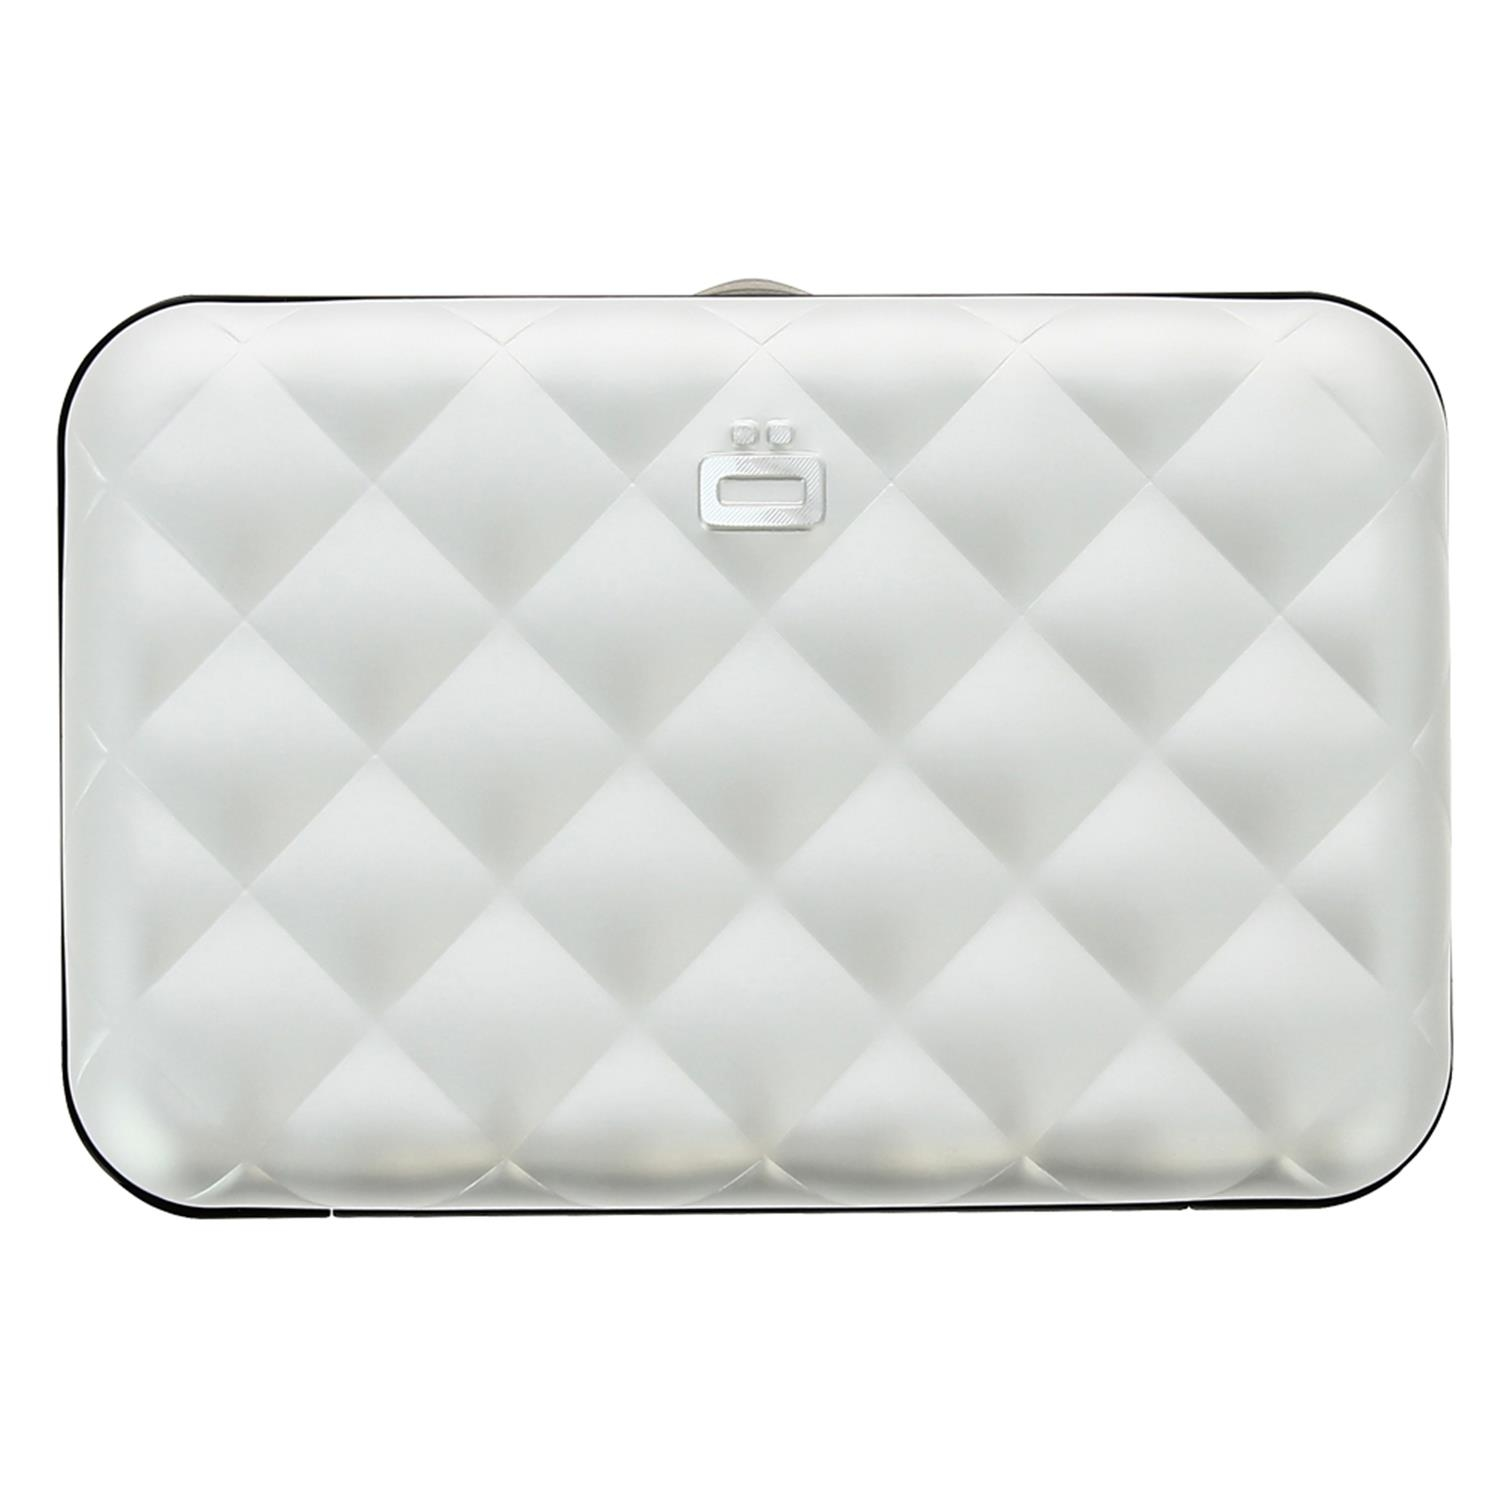 Ögon Quilted Button Card Holder Kartenetui RFID-safe Silber